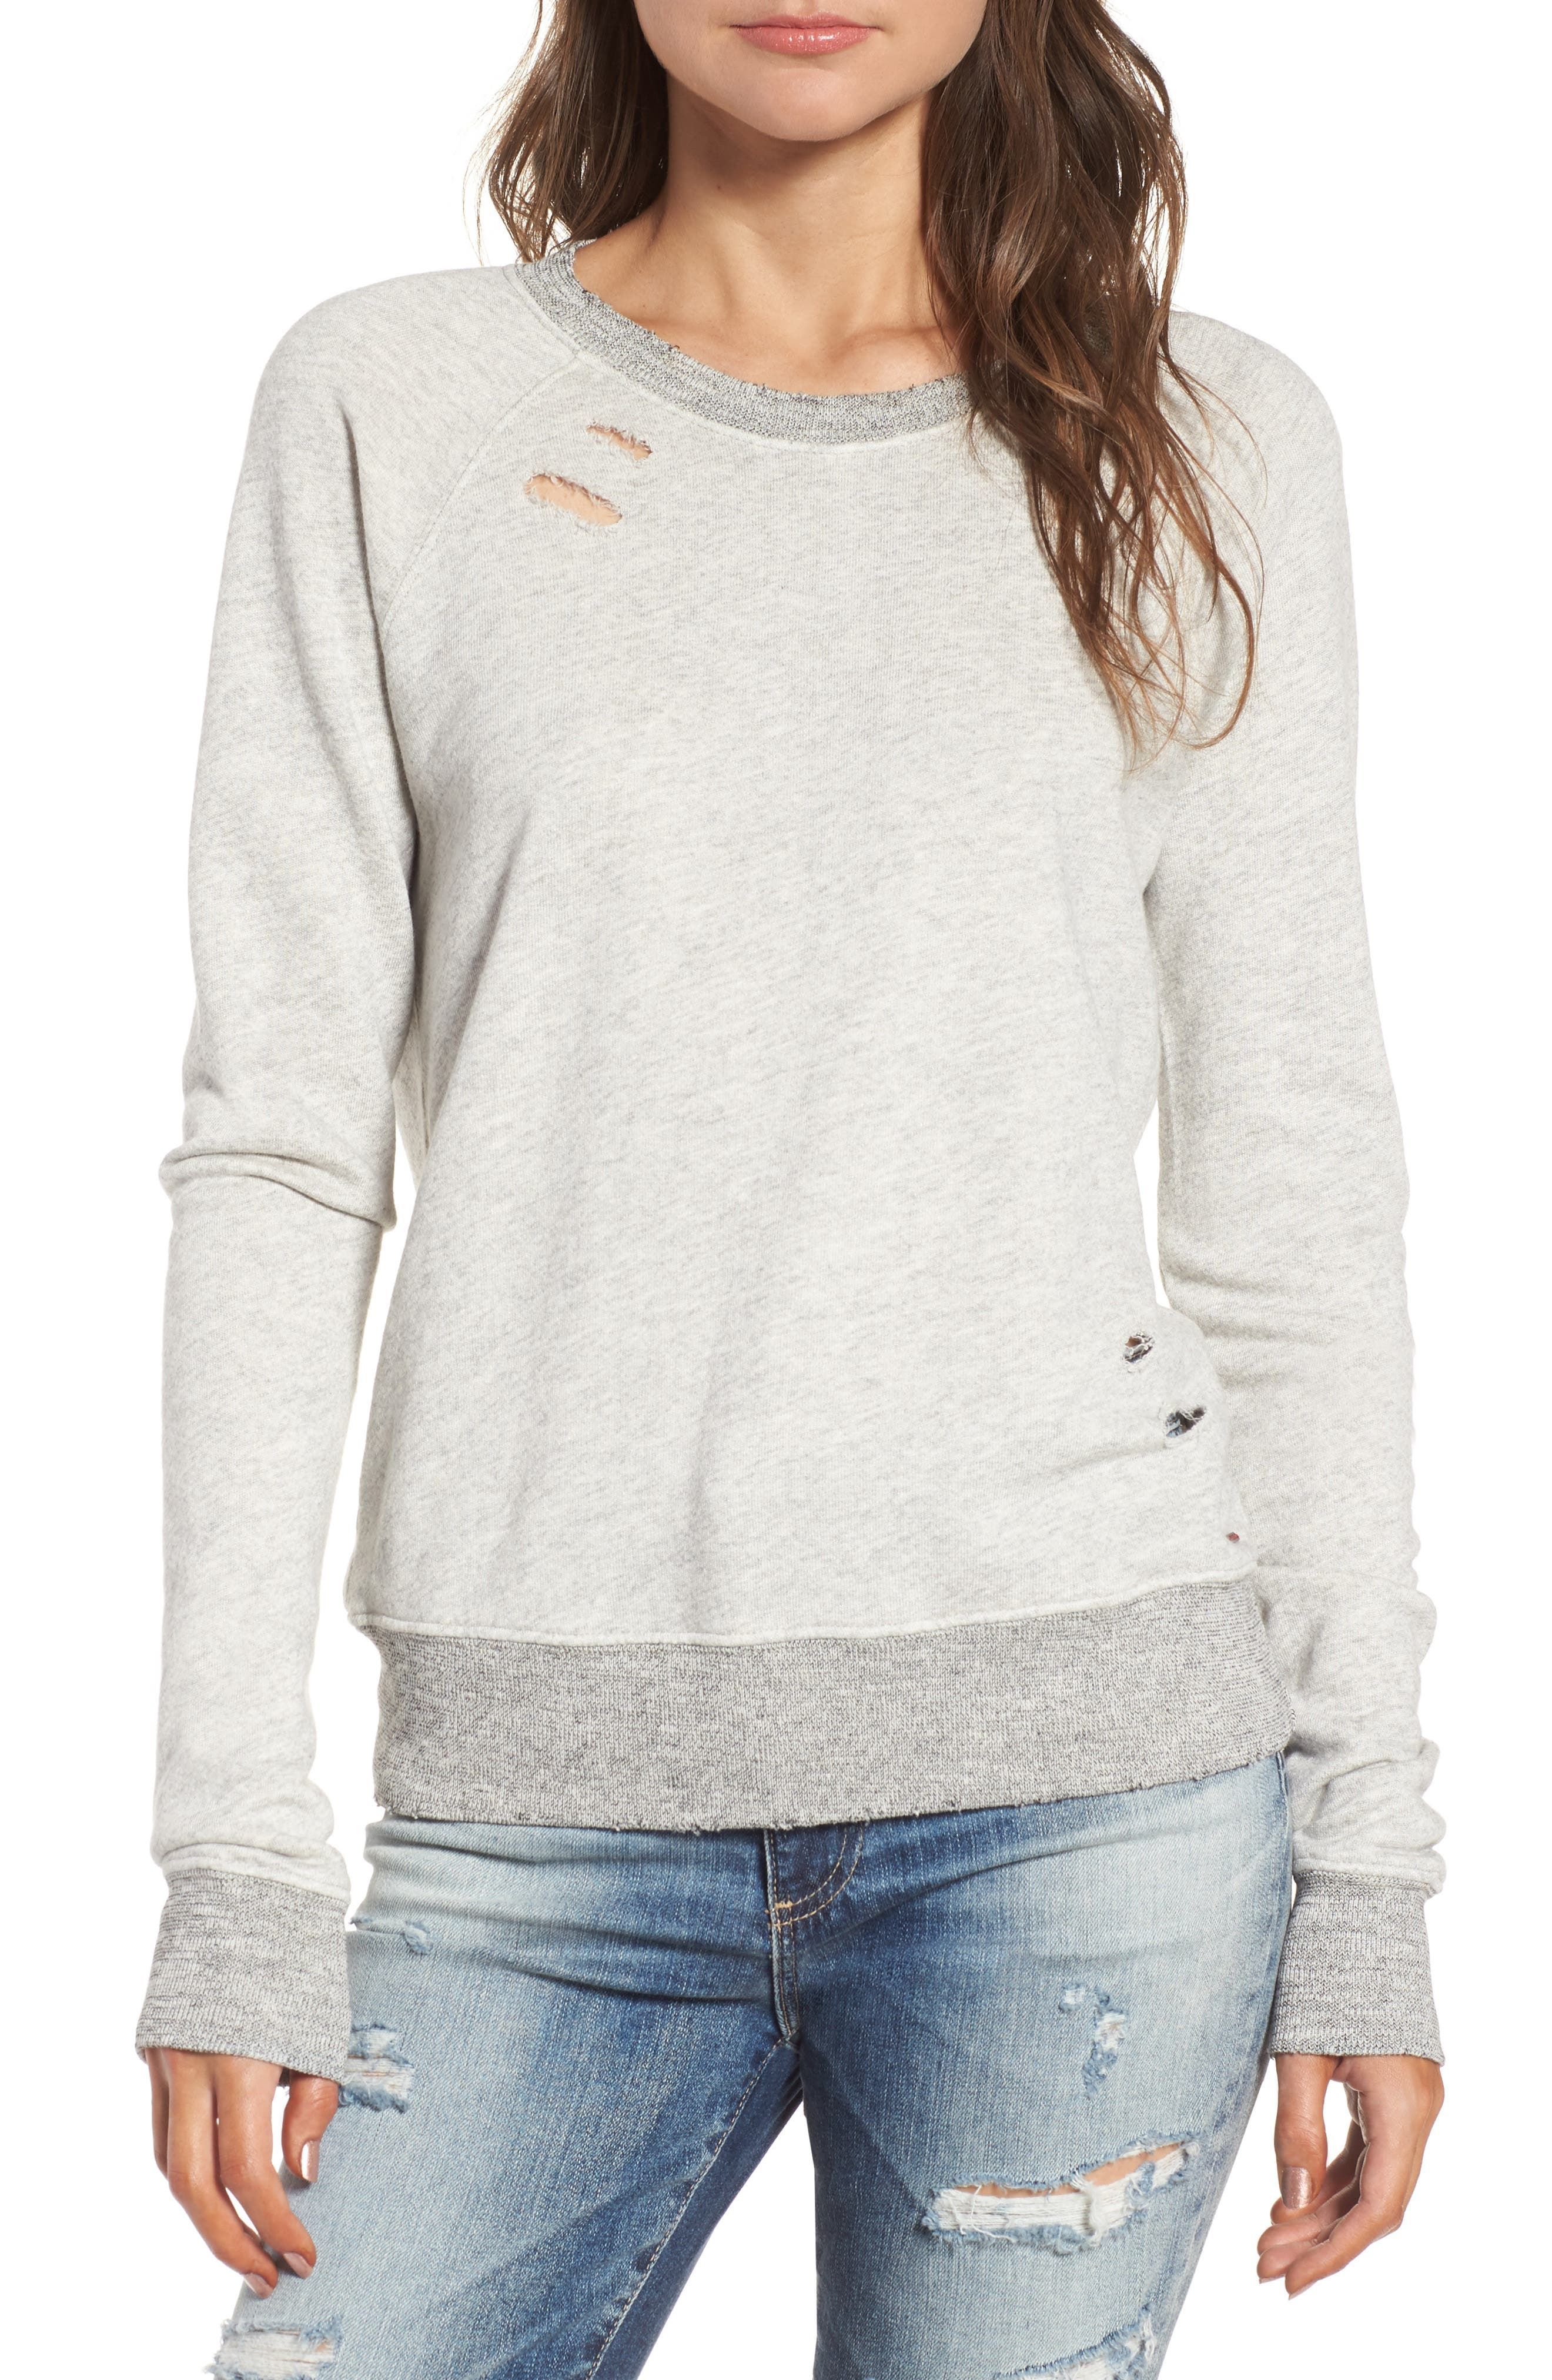 Alternate Image 1 Selected - n:PHILANTHROPY Belize Deconstructed Sweatshirt